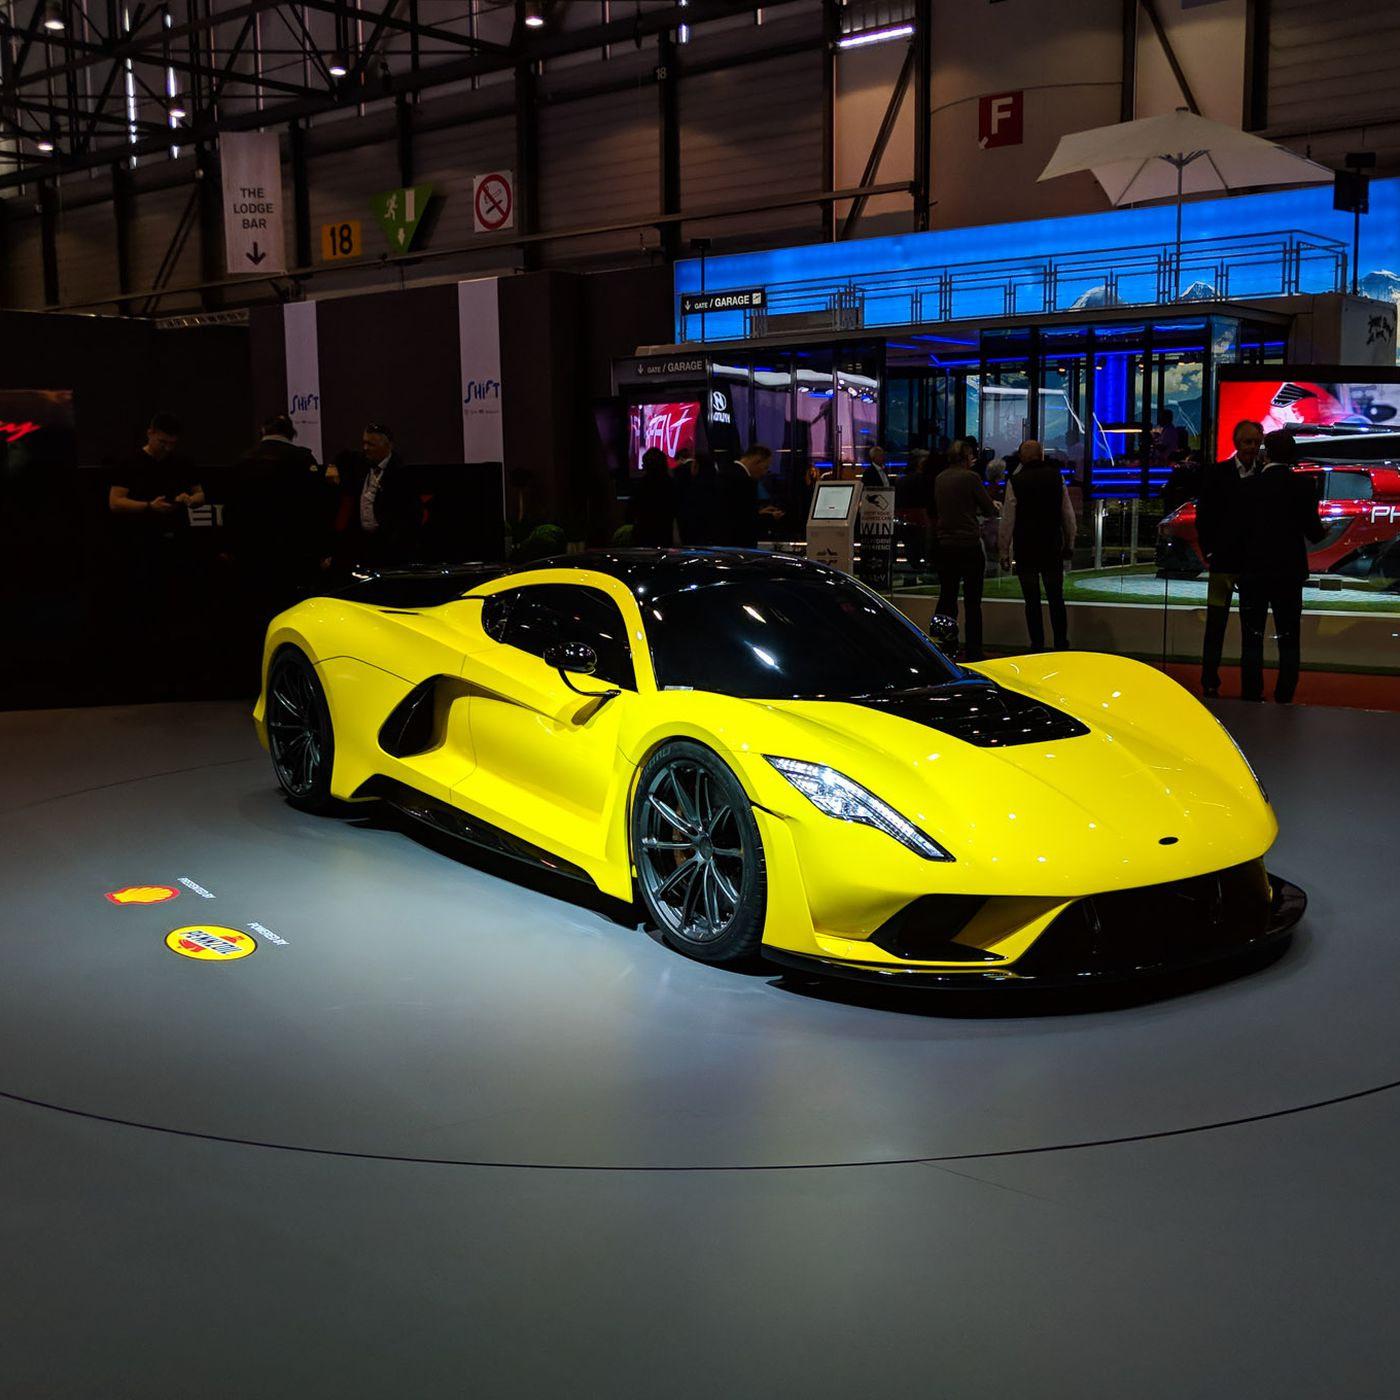 Hennessey S Venom F5 Could Be The First Road Car To Break 300 Miles Per Hour The Verge